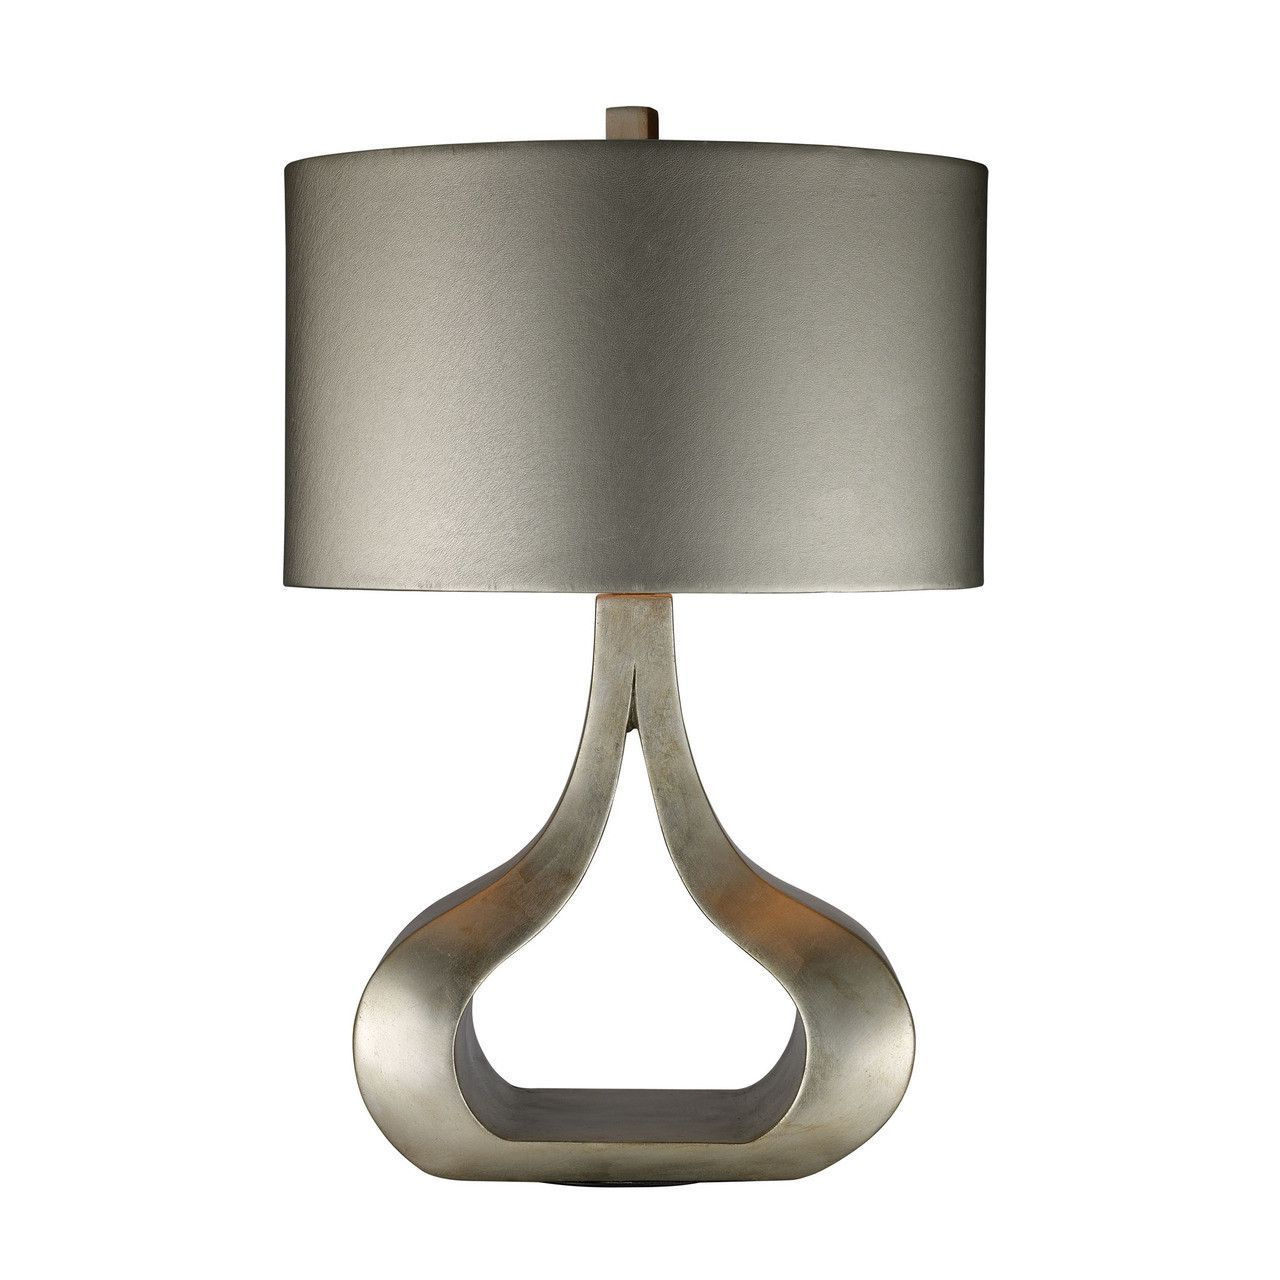 Carolina Table Lamp In Silver Leaf With Metallic Silver Shade D1840 Table Lamp Leaf Table